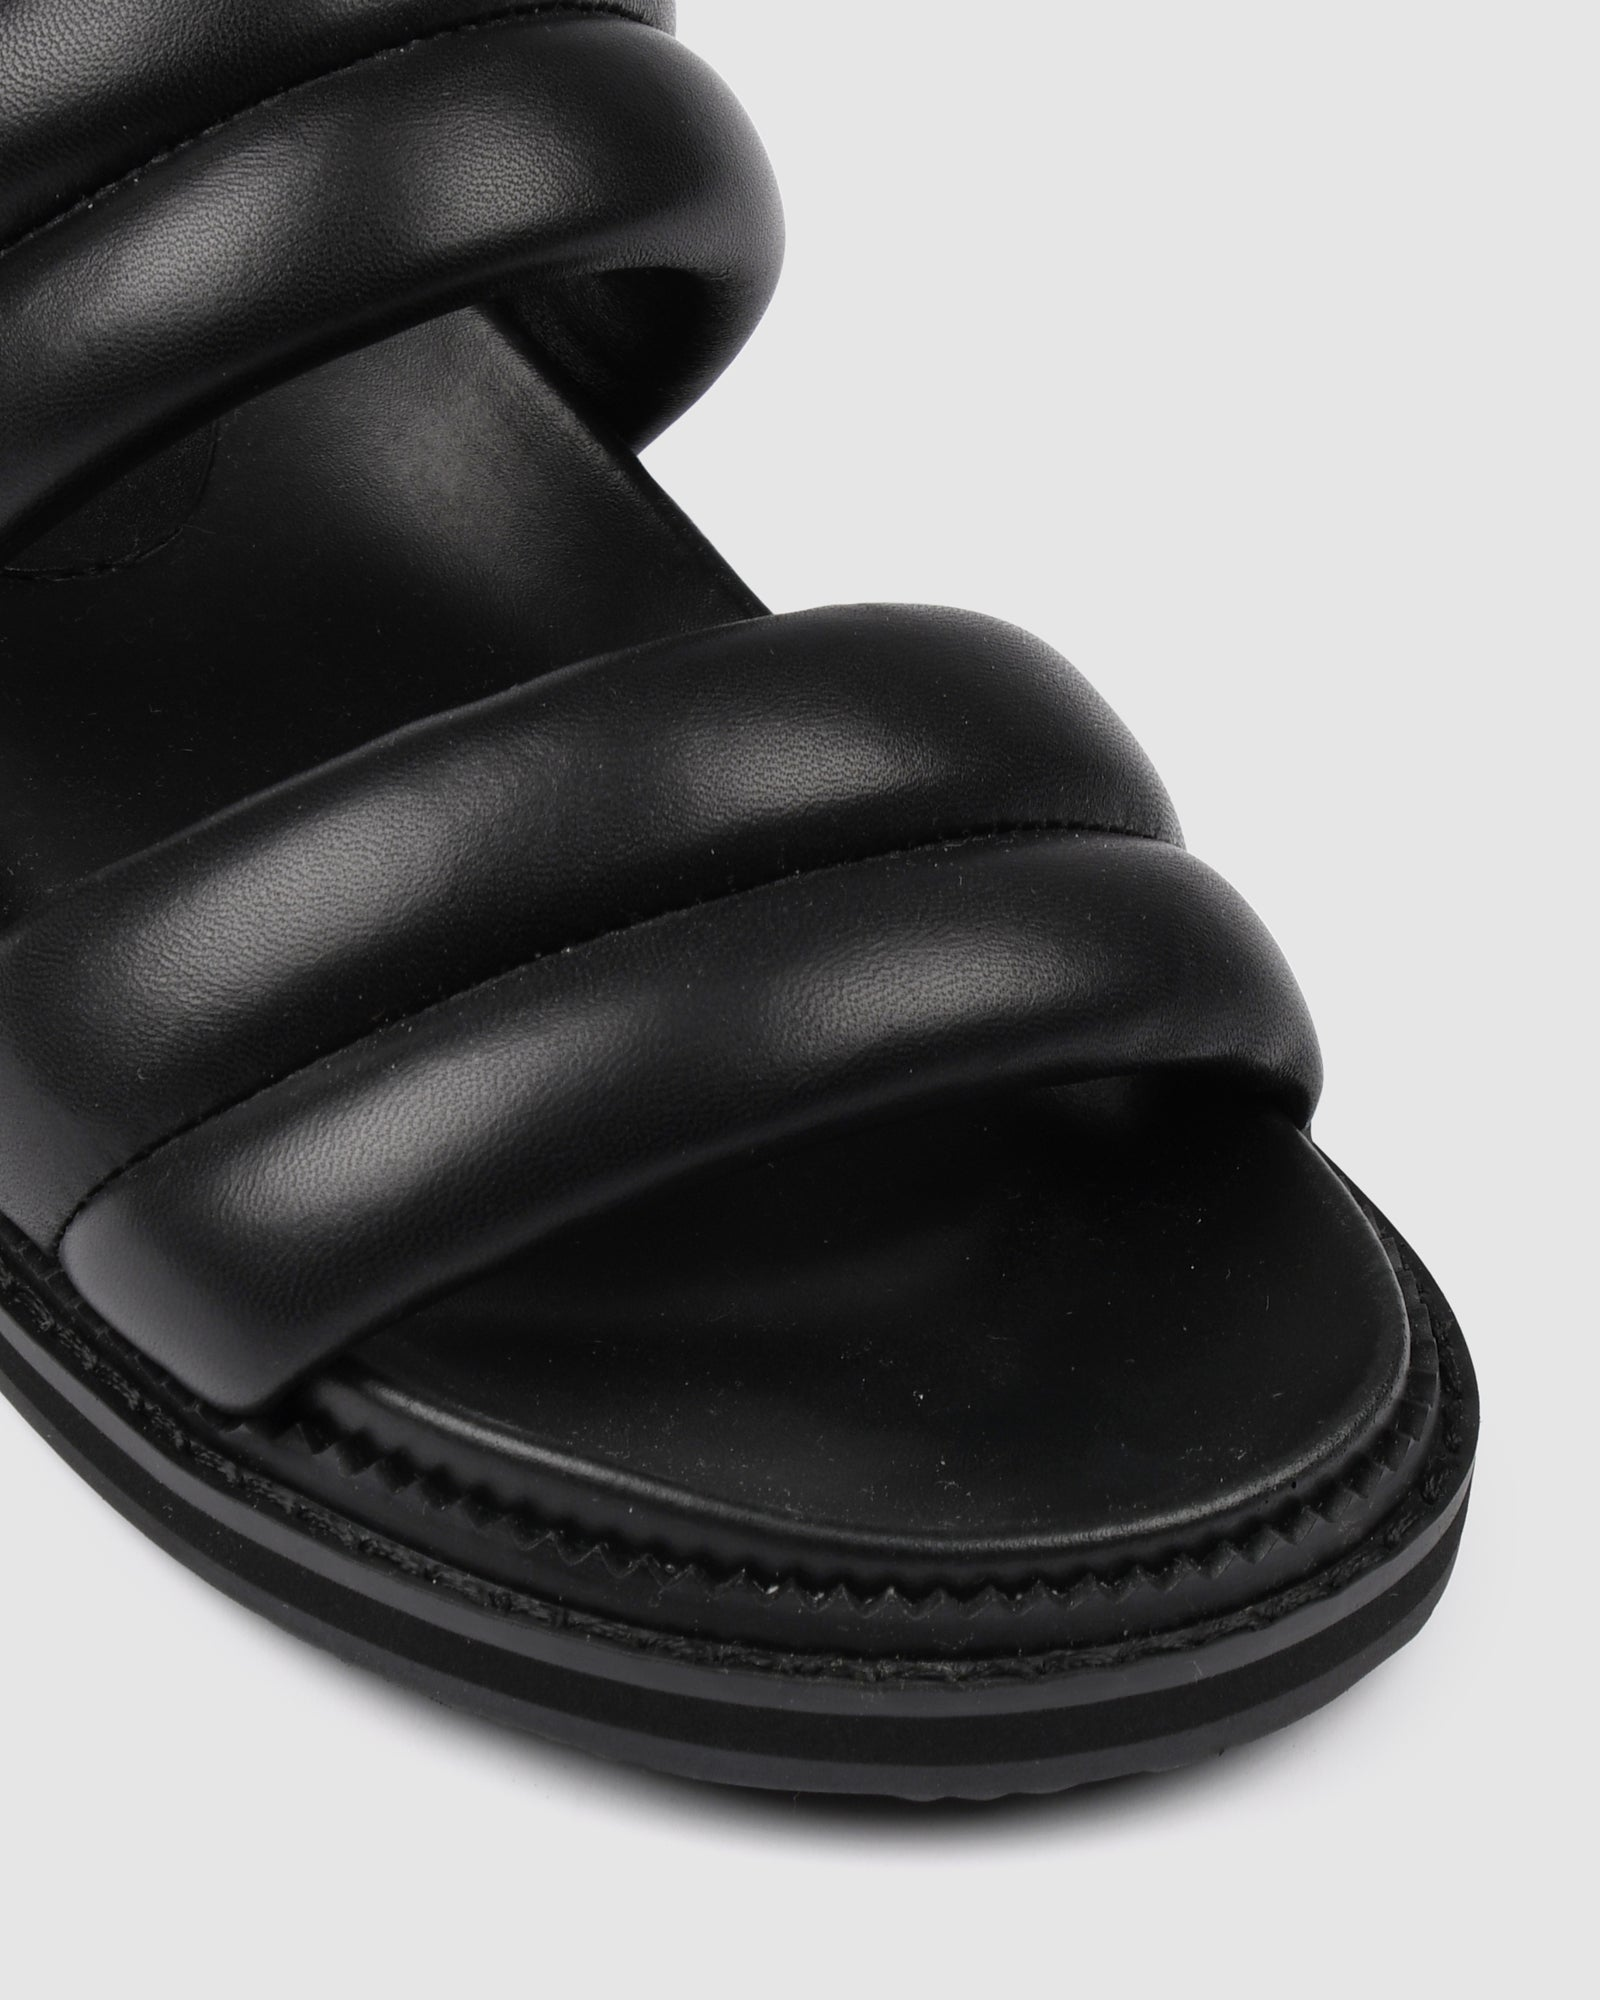 PRINCE FLAT SANDALS BLACK LEATHER